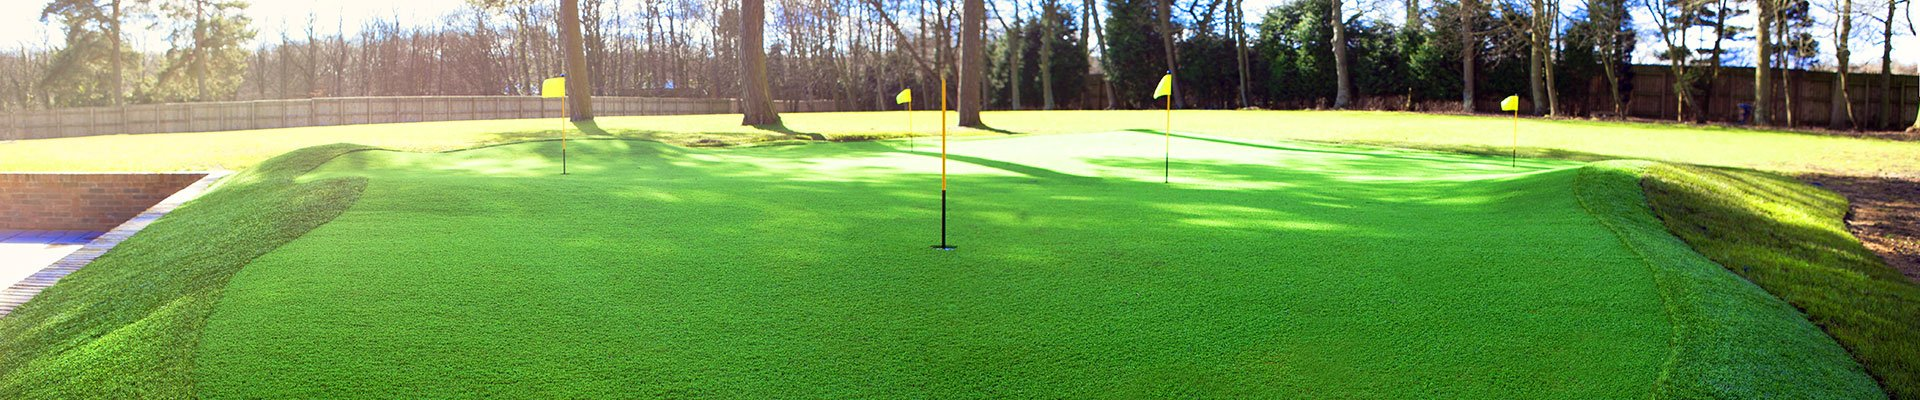 European Golf are the non franchised market leaders in delivering the very best synthetic golf practice facilities available in Europe today.